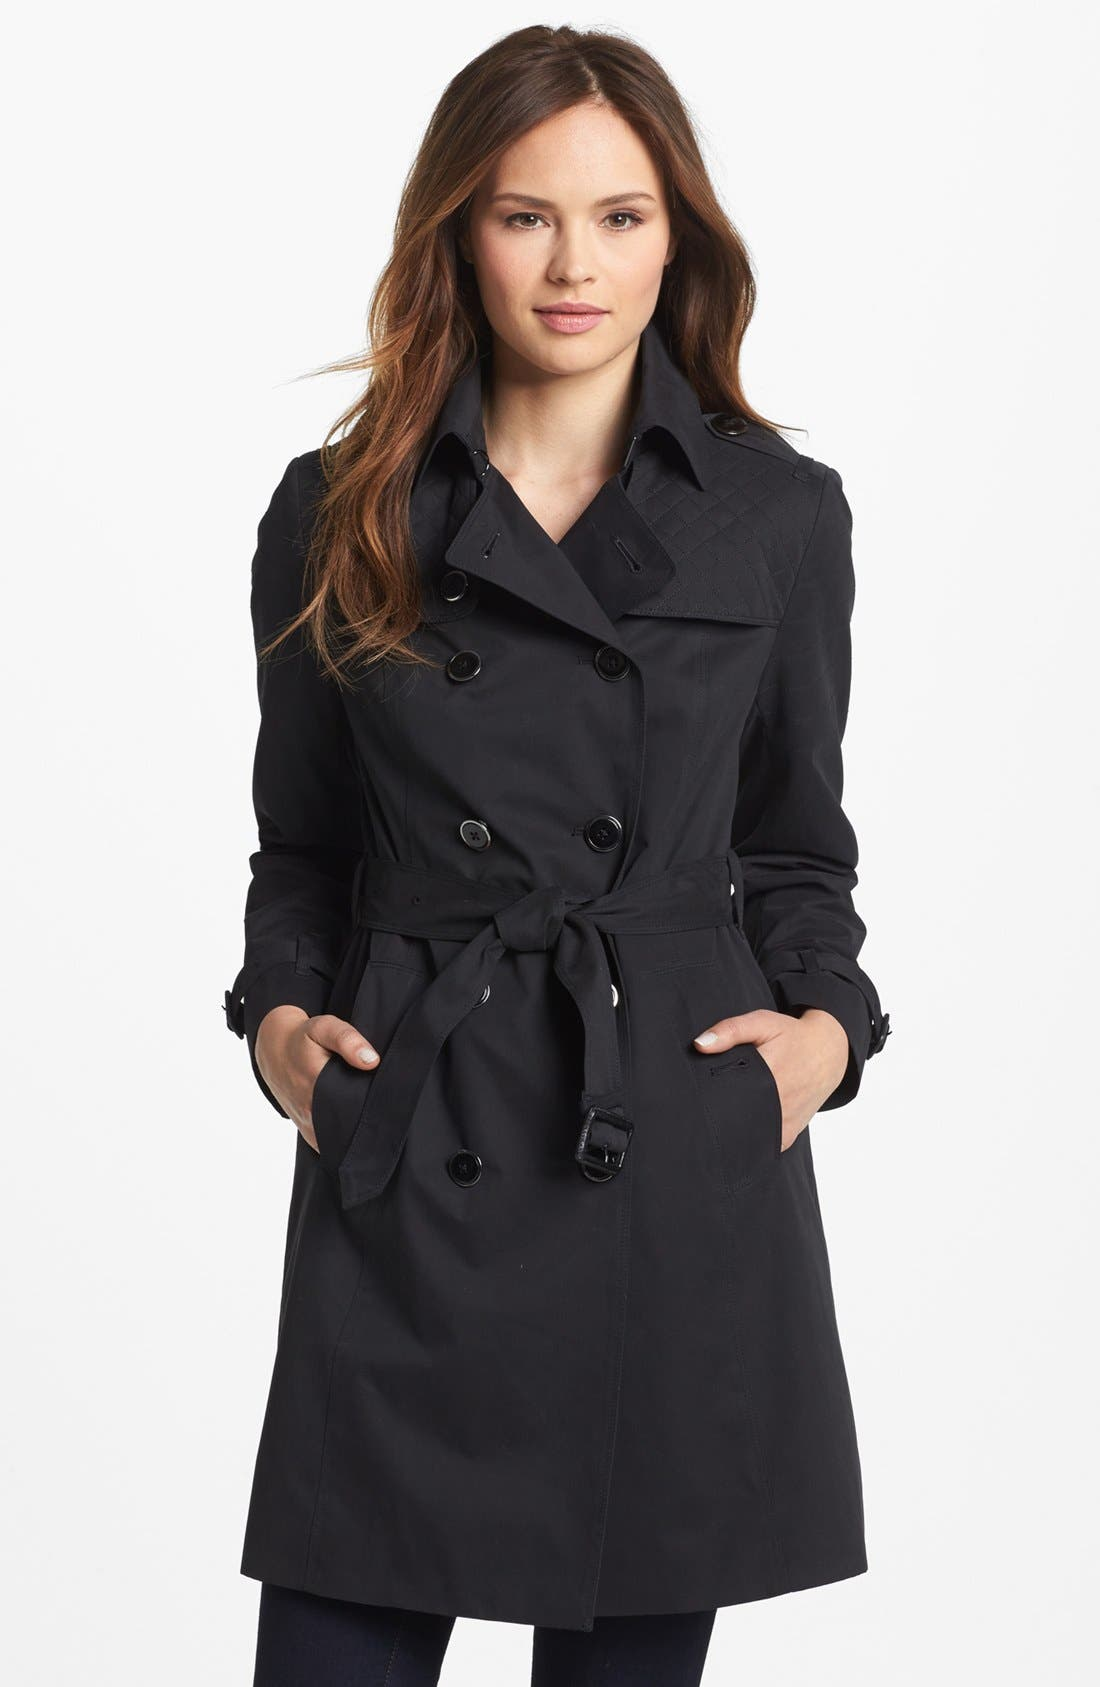 Alternate Image 1 Selected - London Fog Quilted Flap Double Breasted Trench Coat (Regular & Petite) (Online Only)